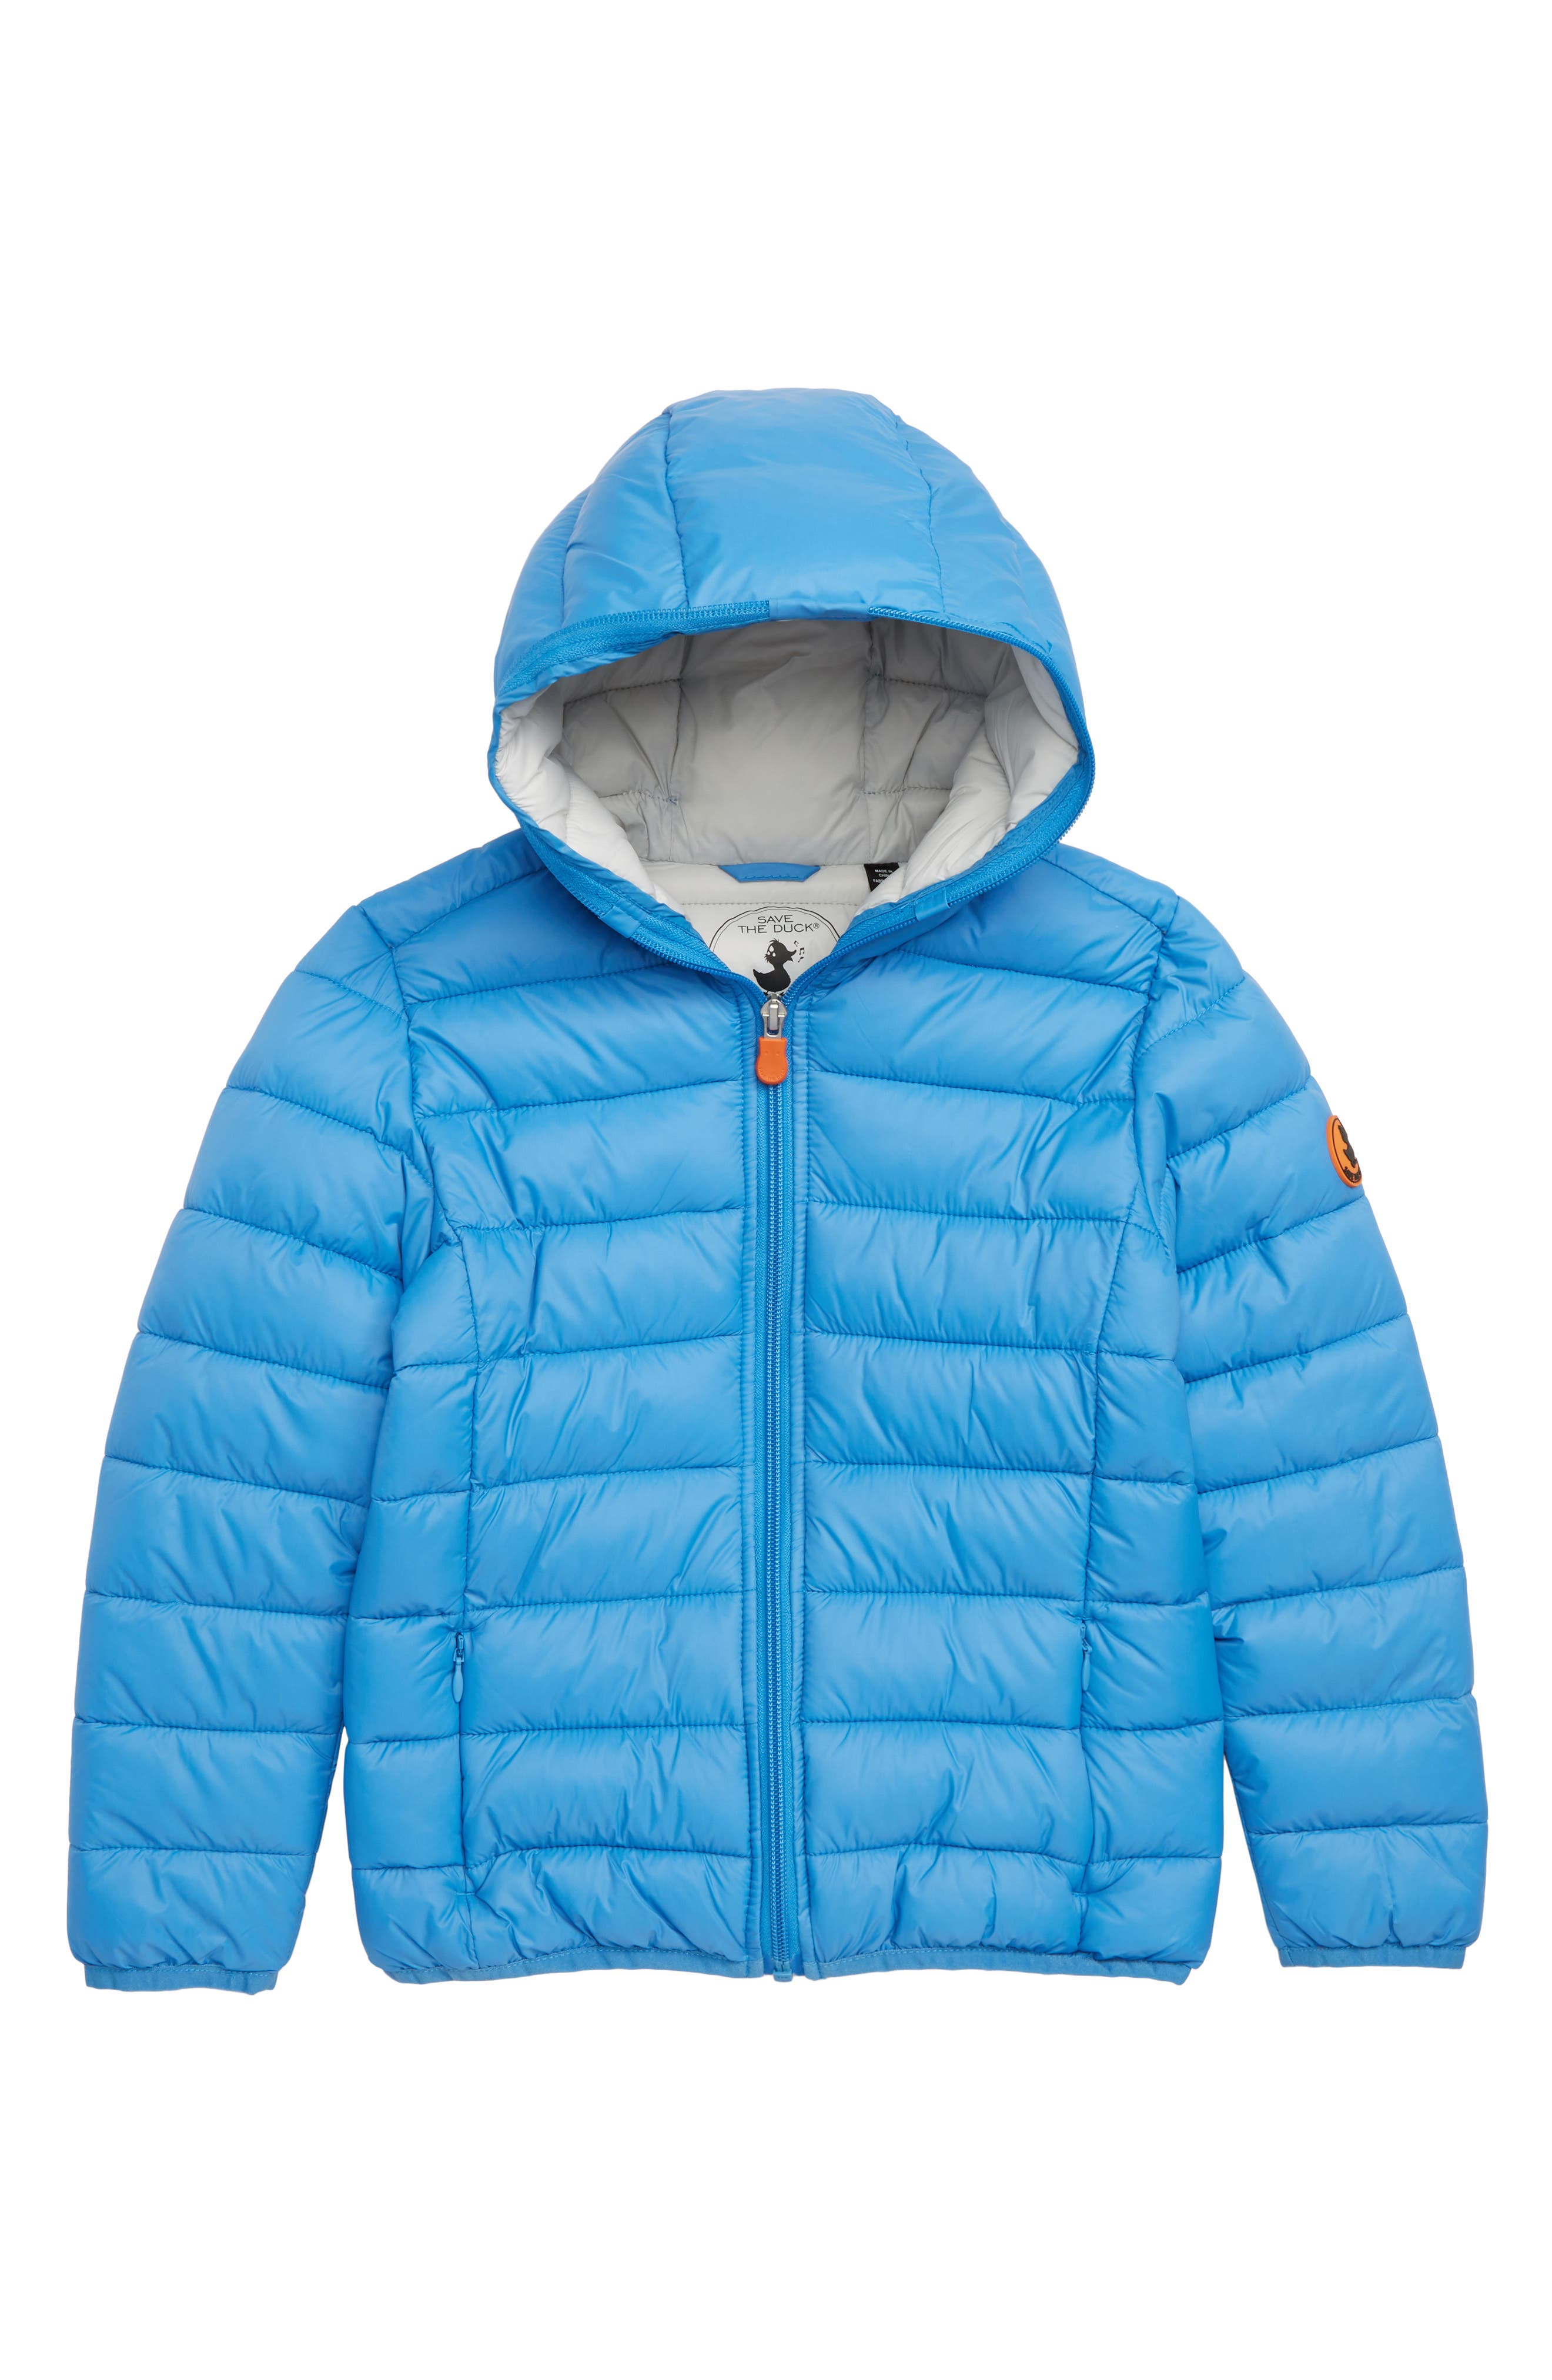 Water Resistant Hooded Jacket,                             Main thumbnail 1, color,                             ICEBURG BLUE